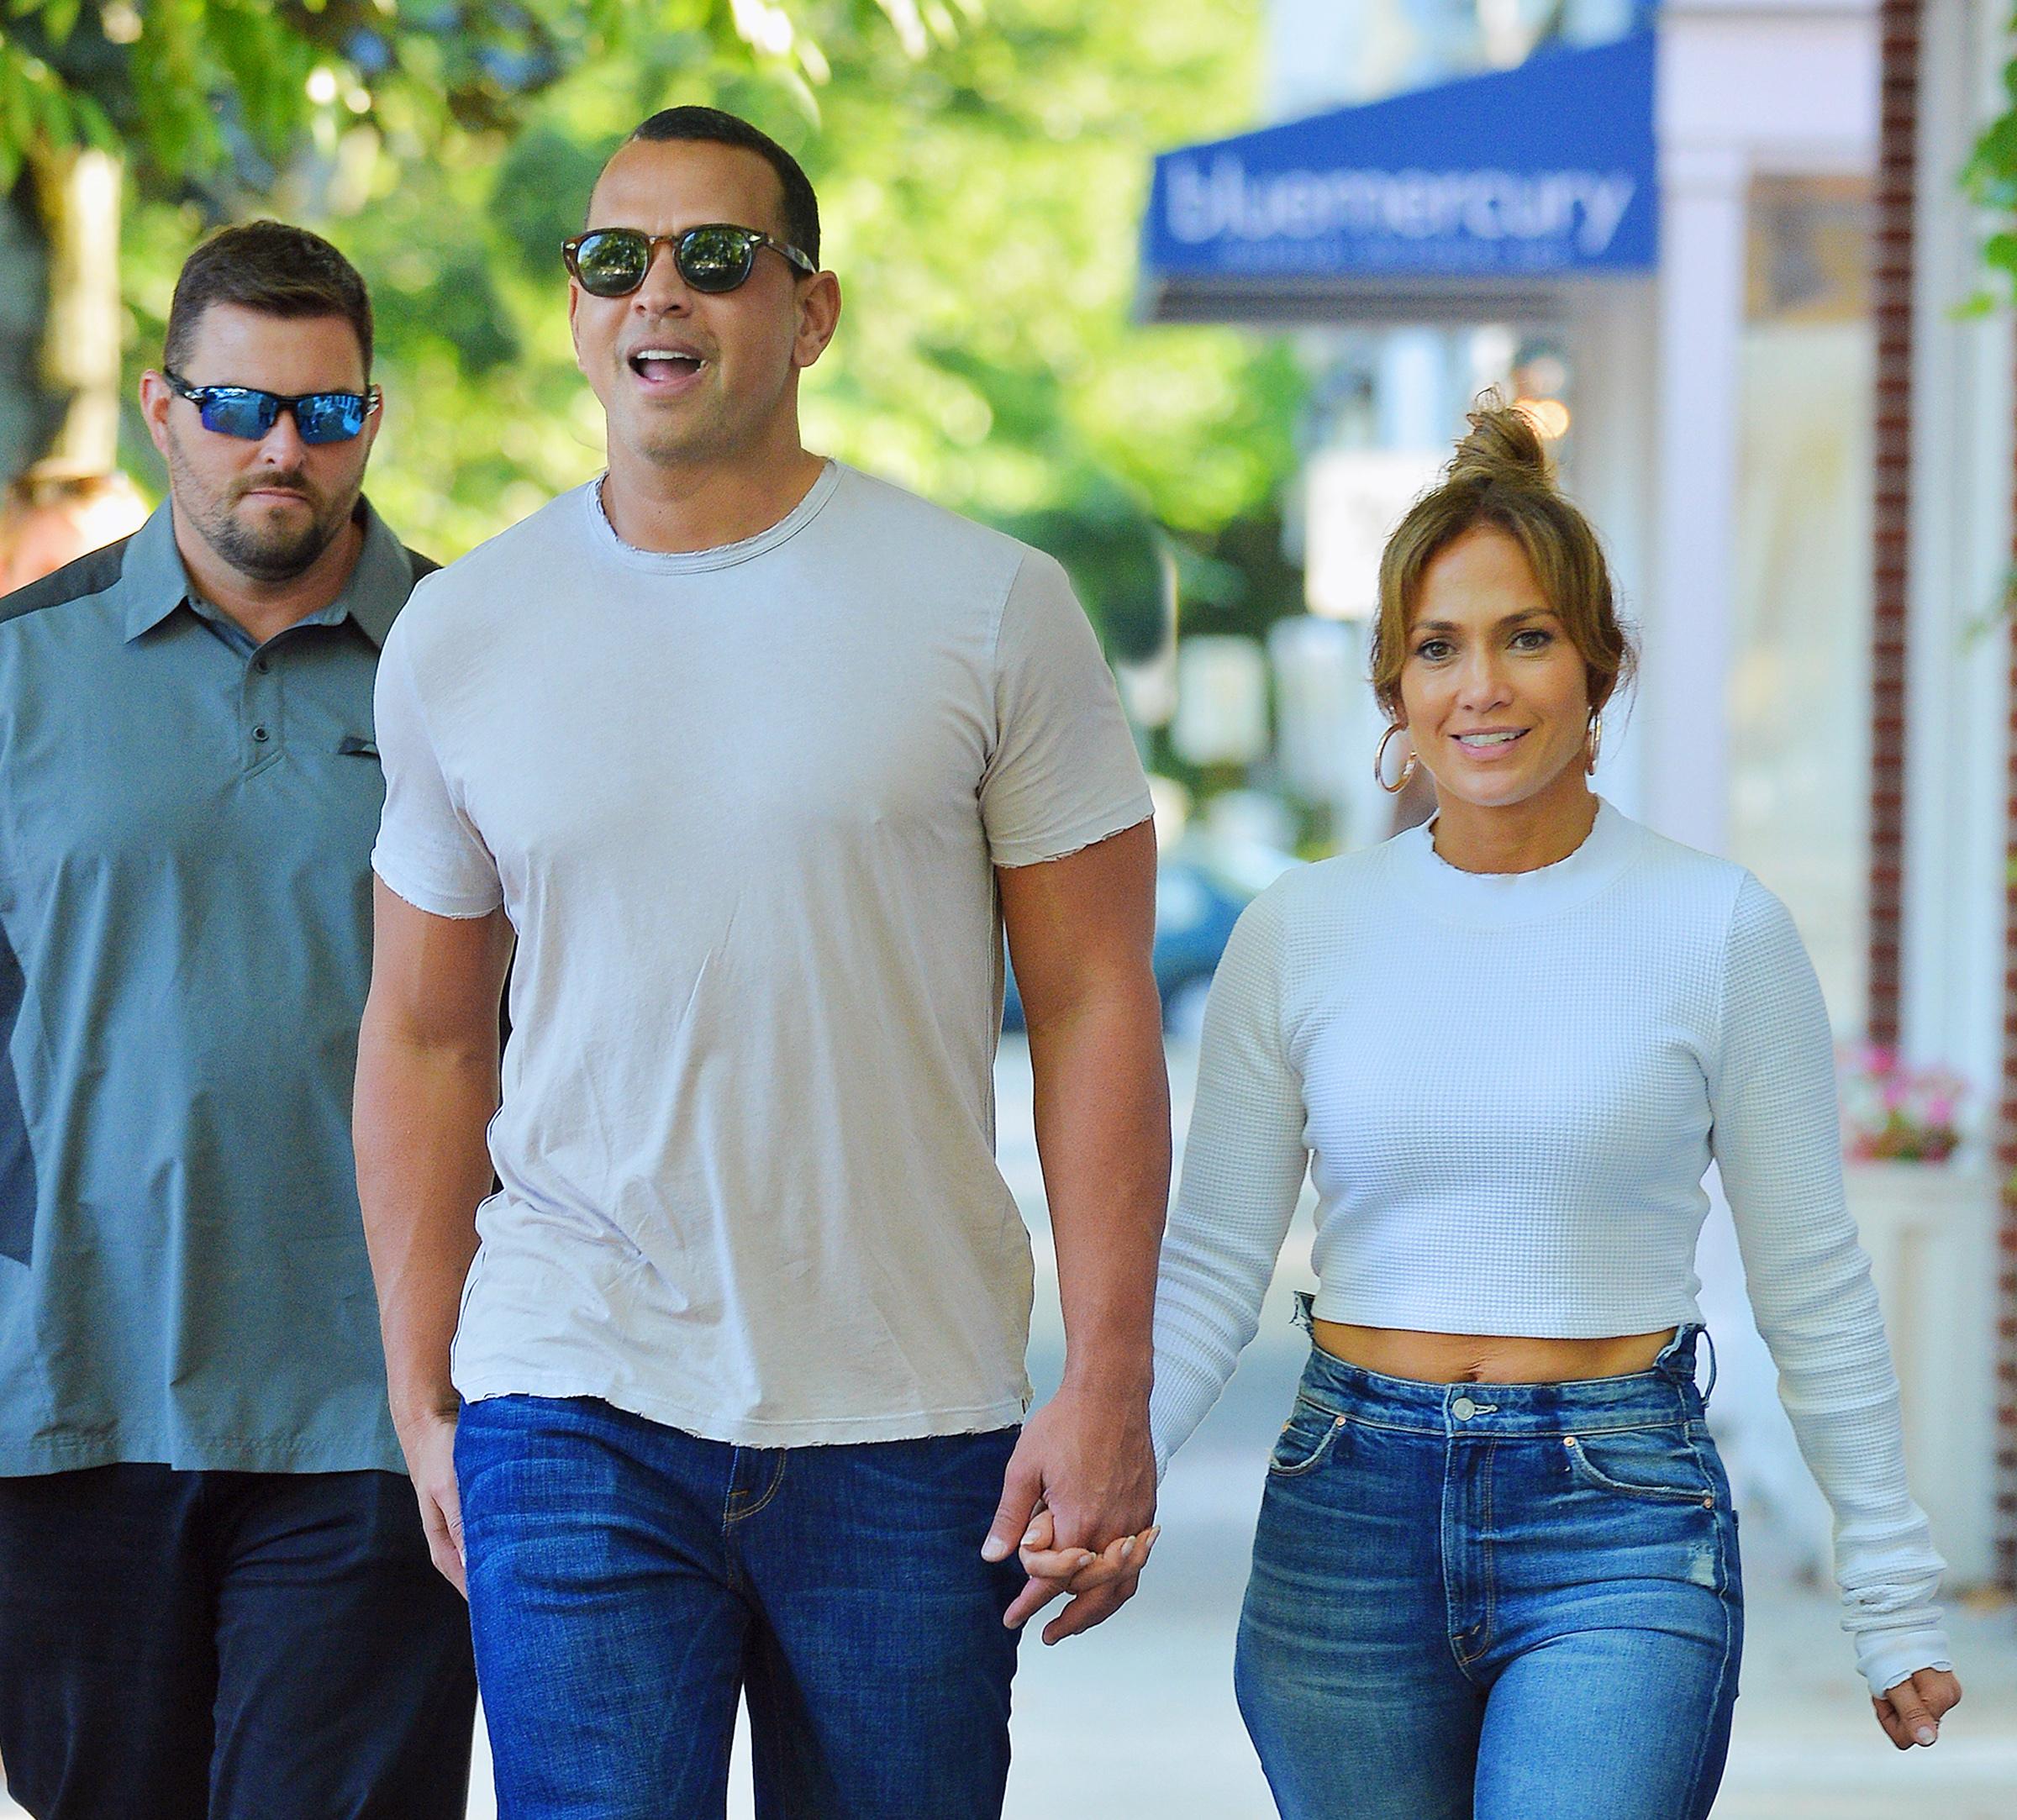 Jennifer Lopez and Alex Rodriguez are all smiles as they enjoyed a sunday stroll in the Hamptons in New York on June 26, 2017.